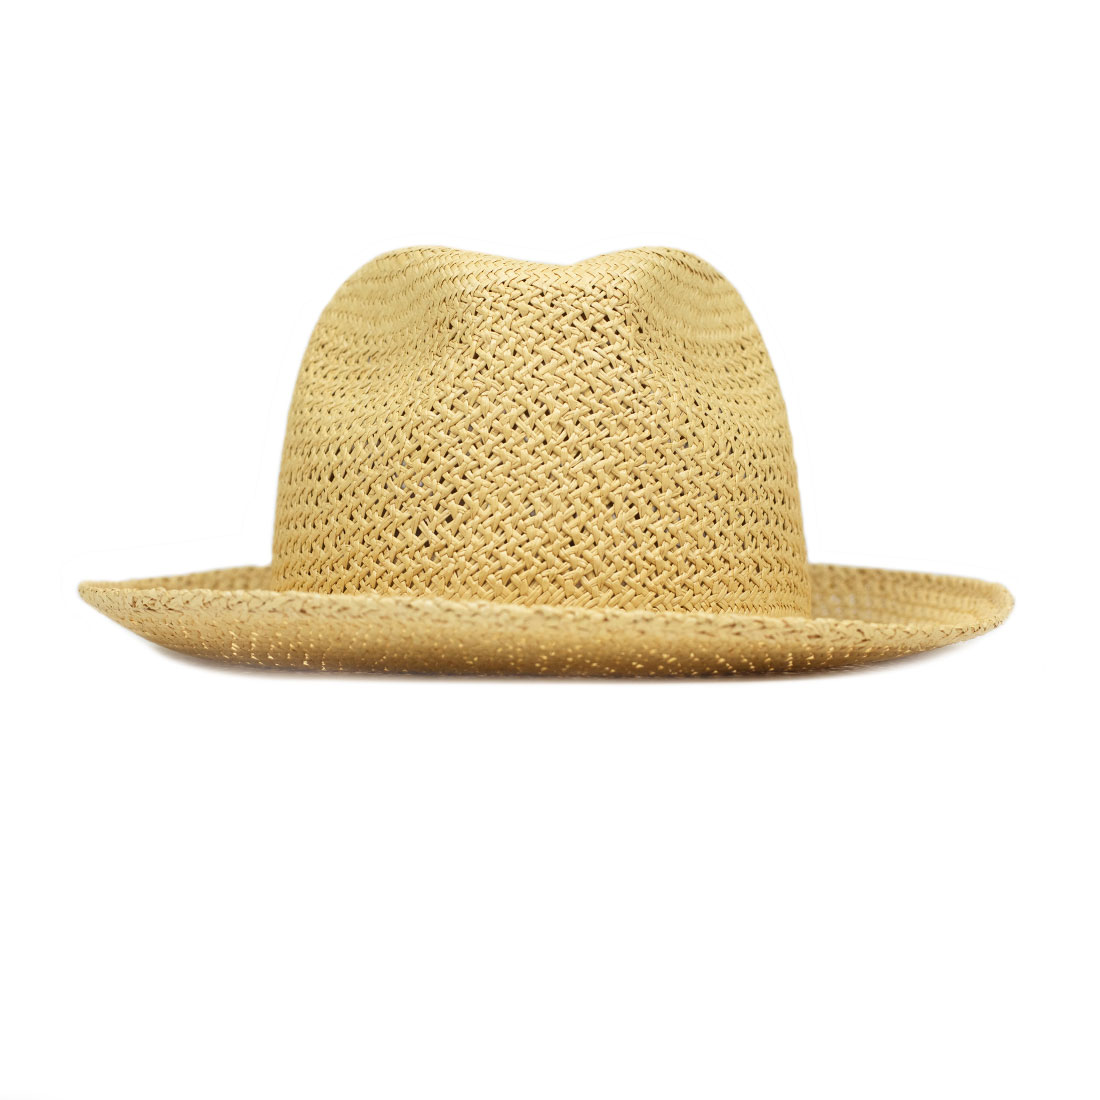 Sublime Hats Made in Japan Spring Summer 2021 SS21 PanamaHat Straw Hat  (3).jpg